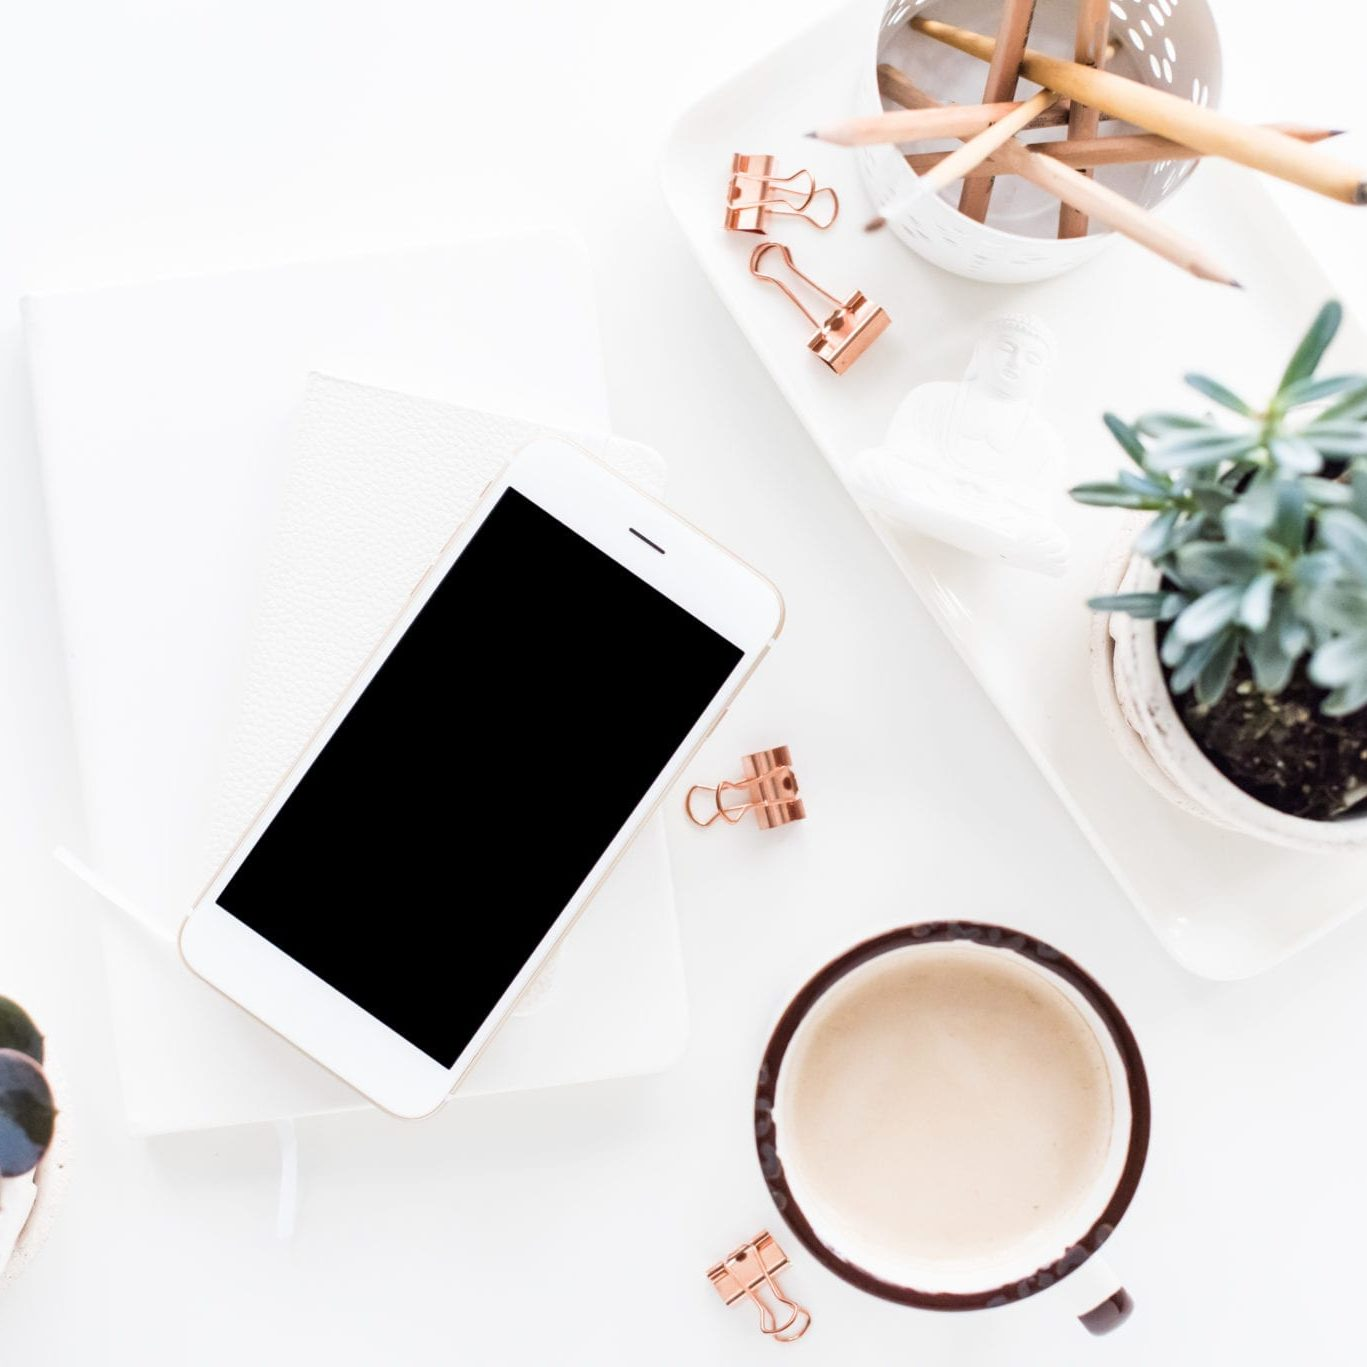 White home office desk flat lay with coffe, smartphone and succulents, clean stylish bloggers workspace, phone screen mock-up